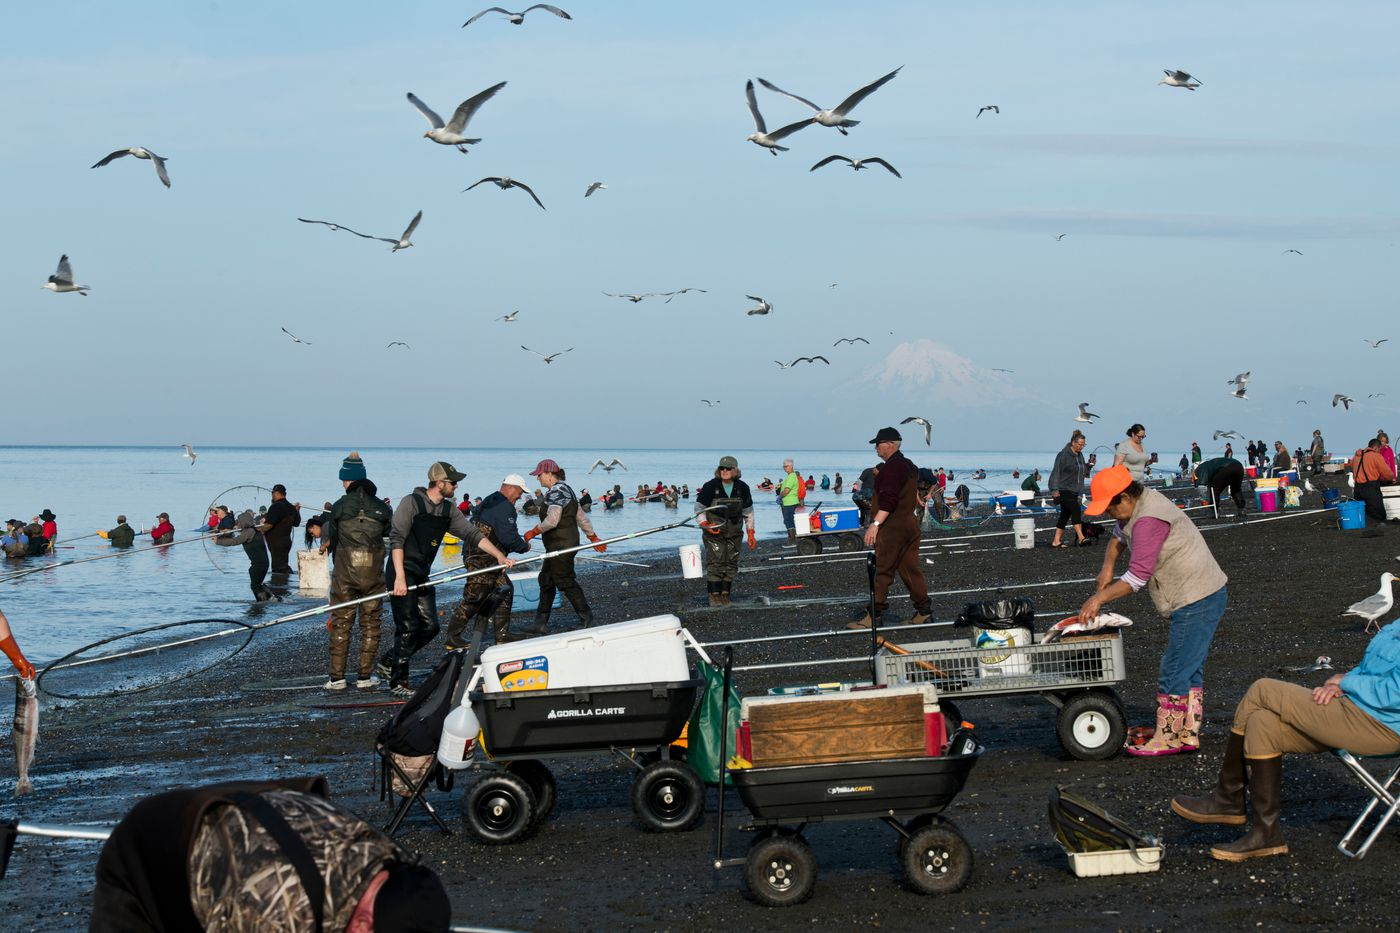 Several hundred Alaskans gathered at the mouth of the Kenai River to dipnet for sockeye salmon on July 18, 2019. (Marc Lester / ADN)